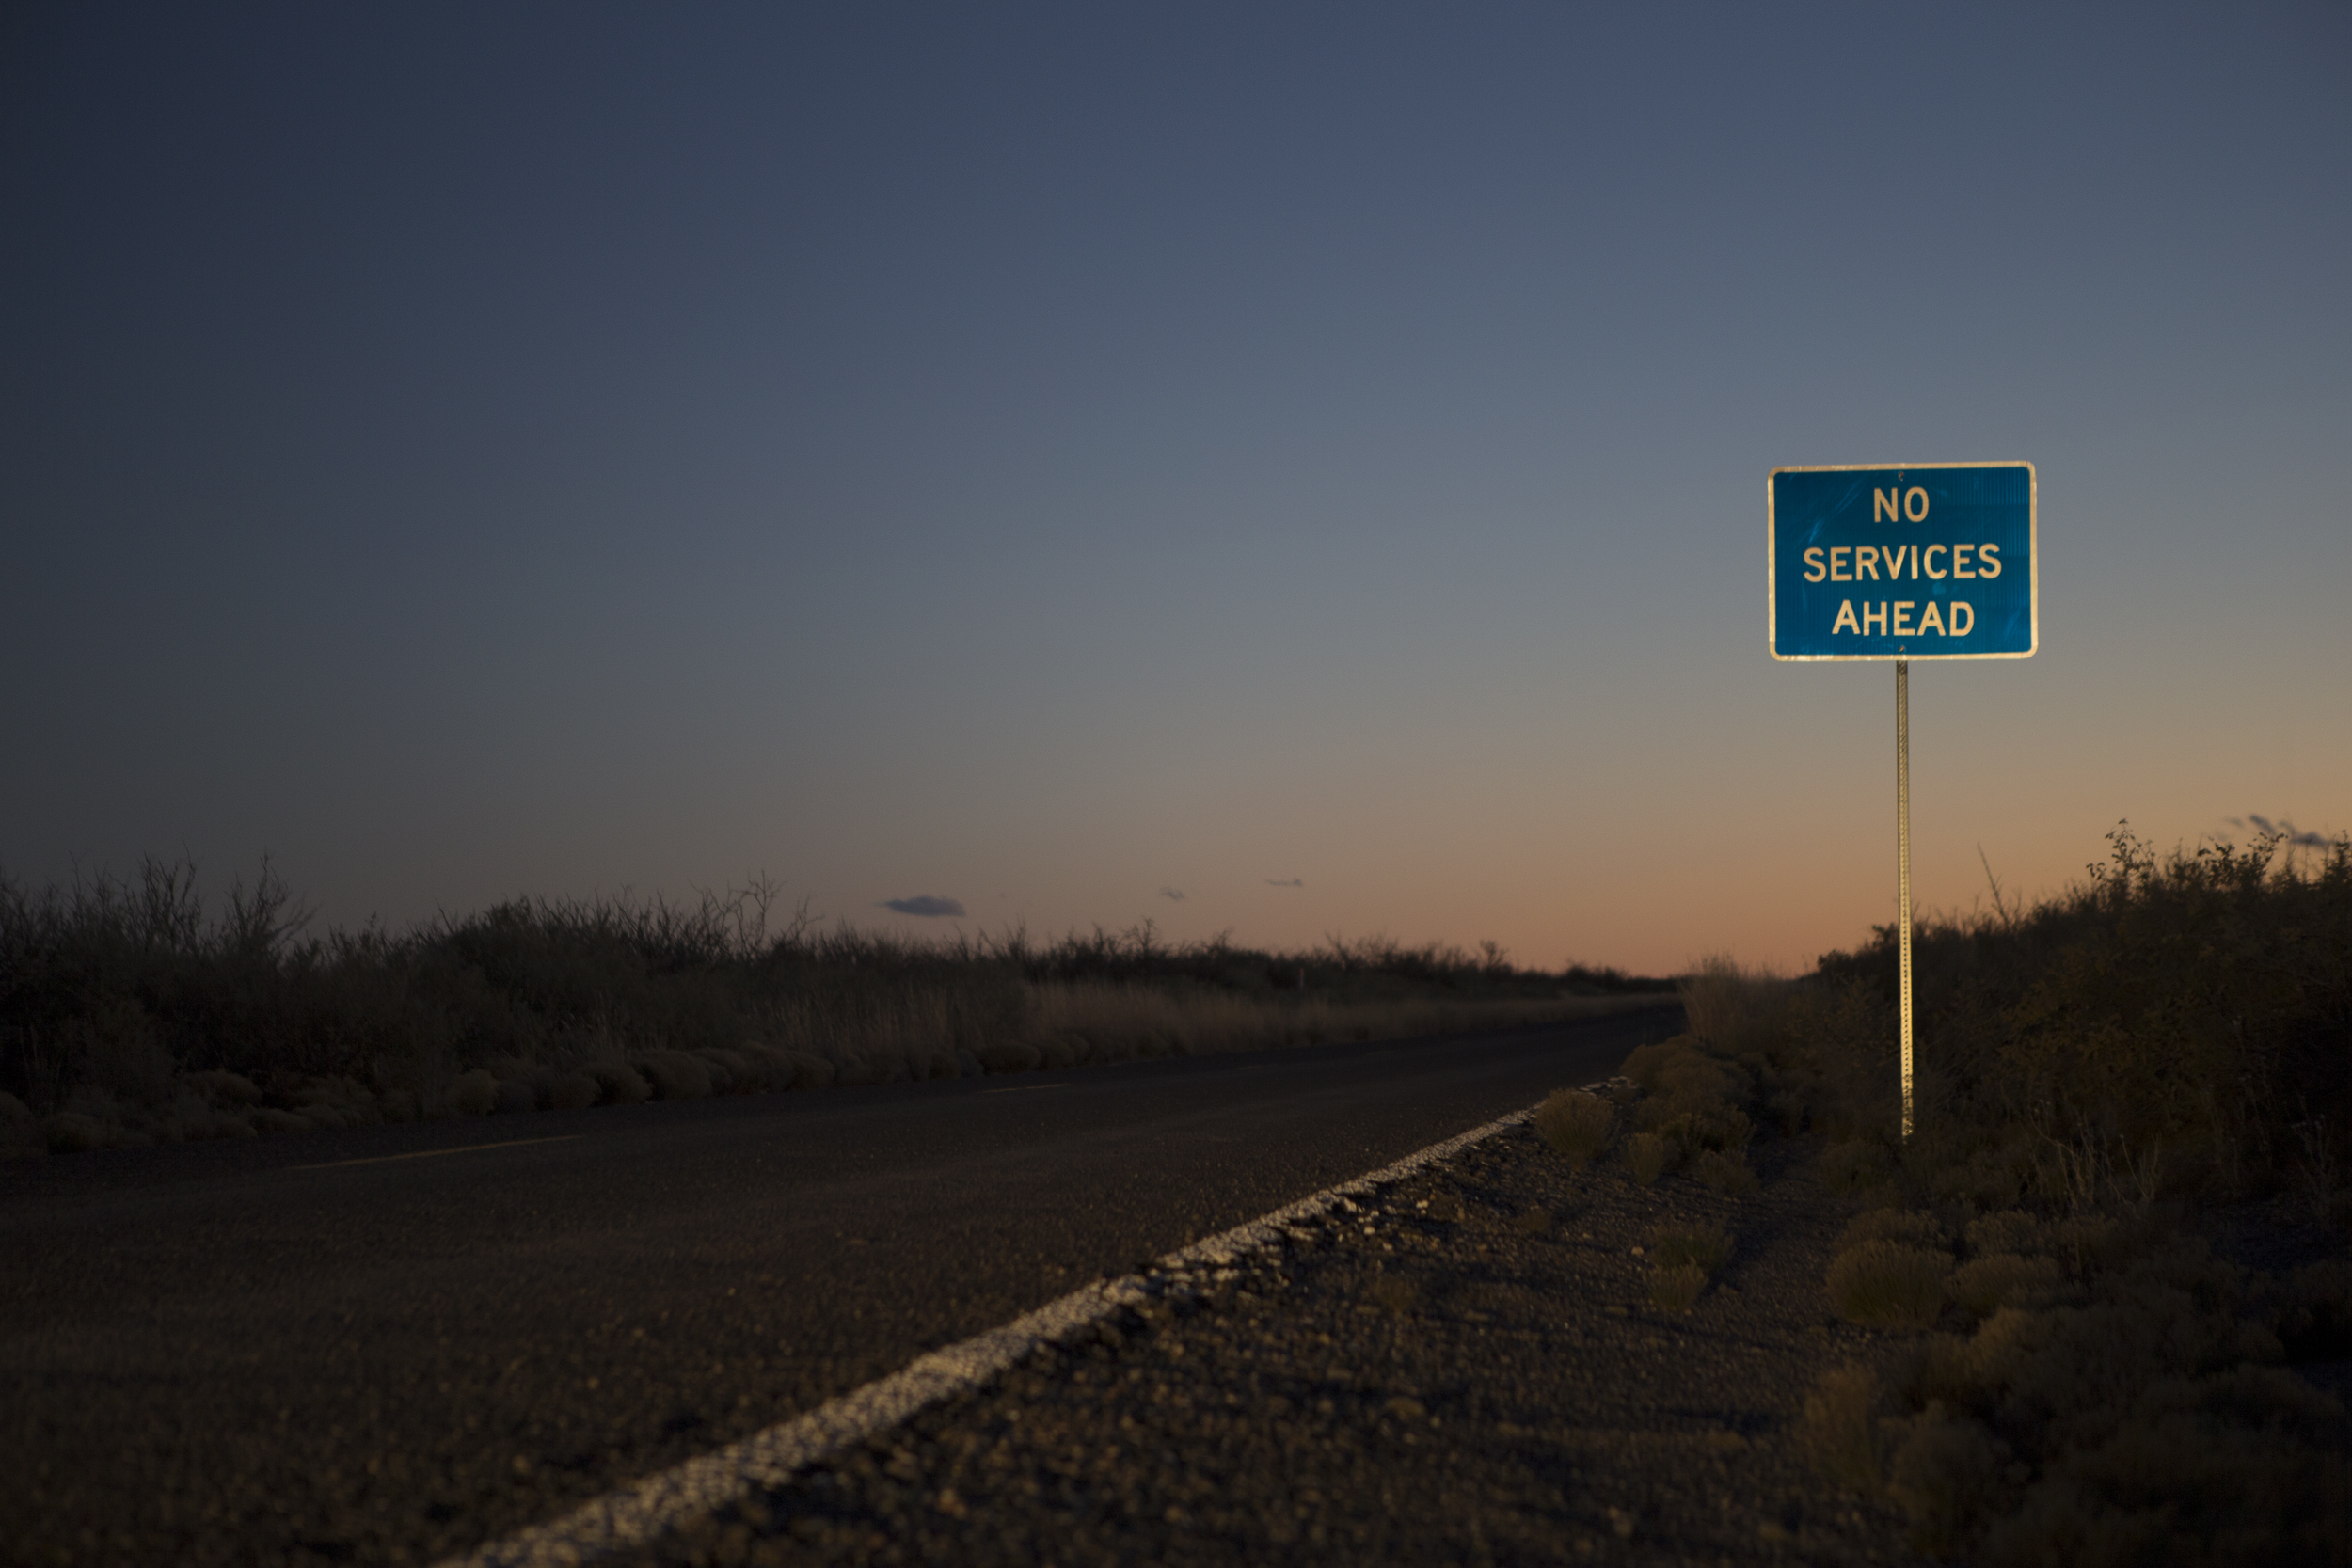 From a recent assignment for Dorado Magazine, a trip to Spaceport America. The long two lane highway dotted with the occasional jackrabbit, tarantula, freight train and road runners ...only to resurface here. Spaceport America.